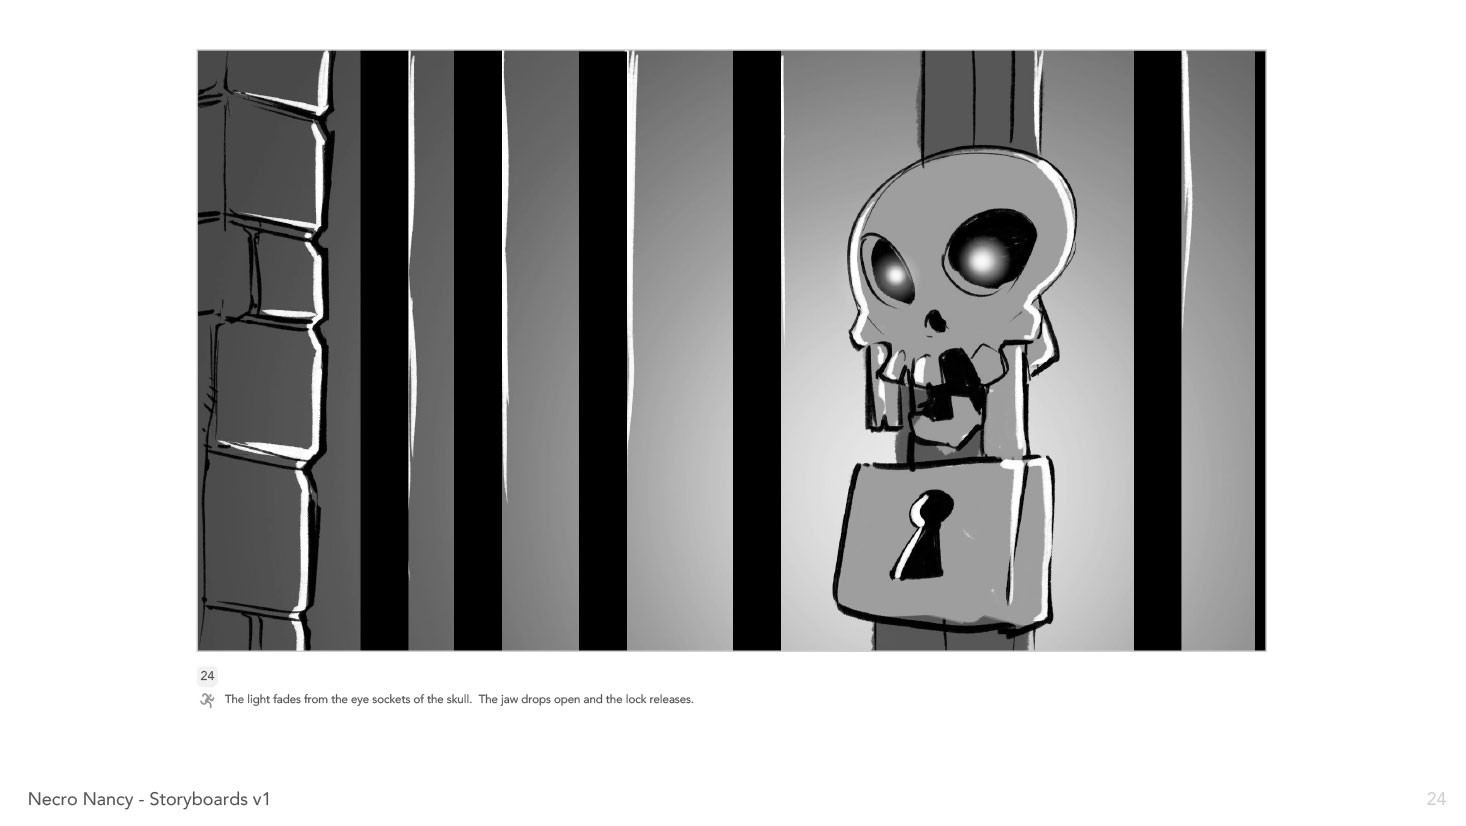 Chx welch necro nancy storyboards 25